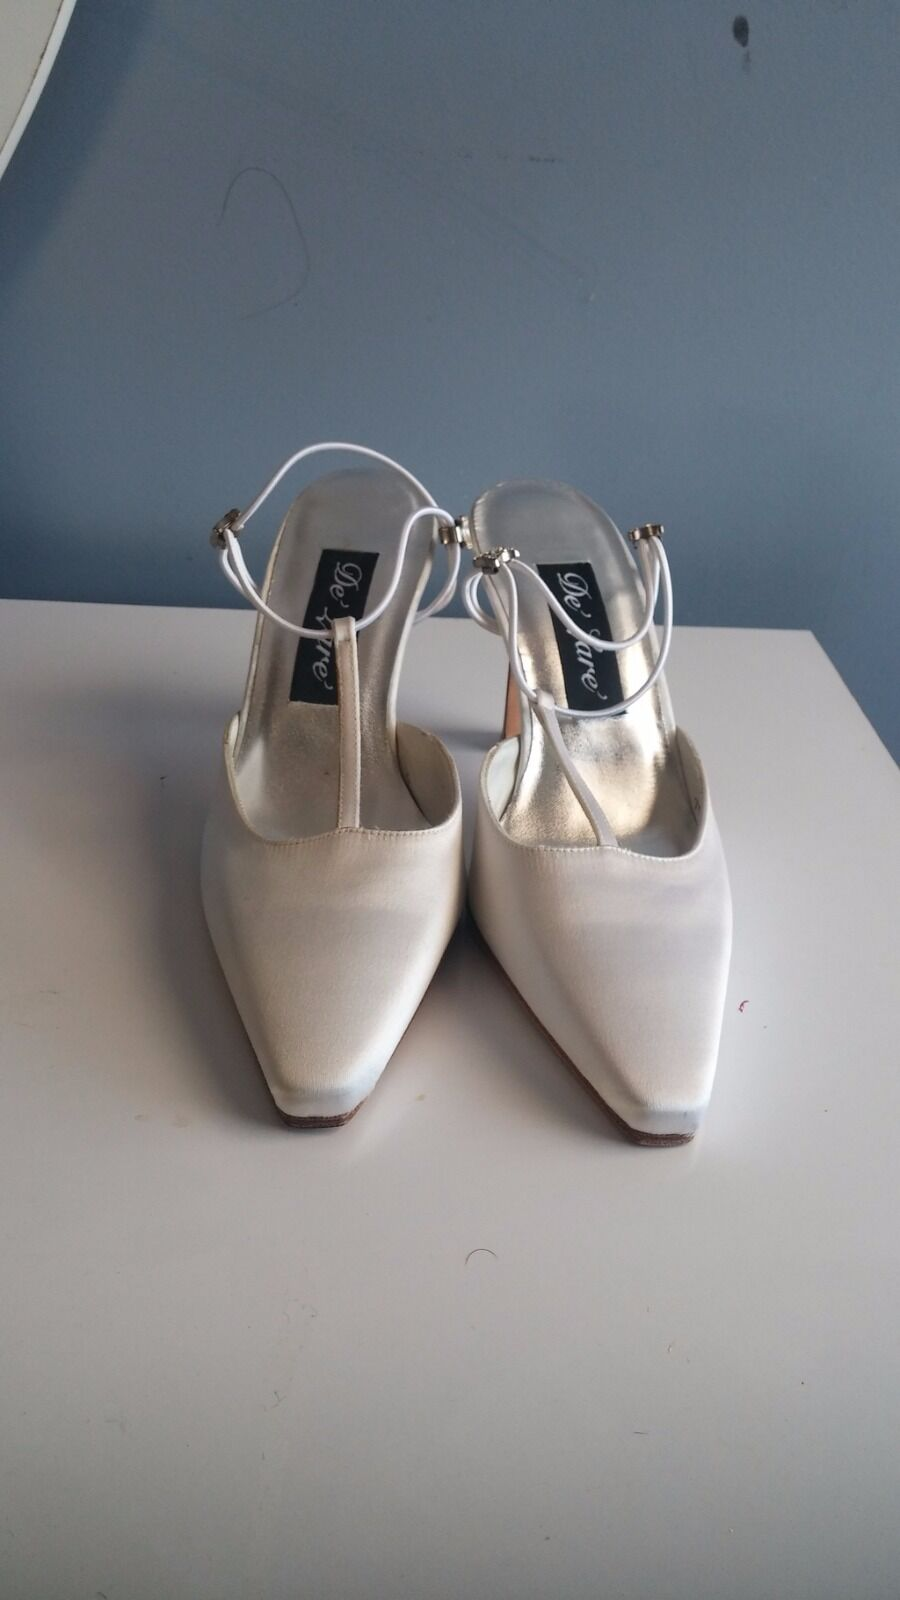 Stuart Weitzman White Pumps with Leather Sole. US Women's Size 7.5, Medium( B ).